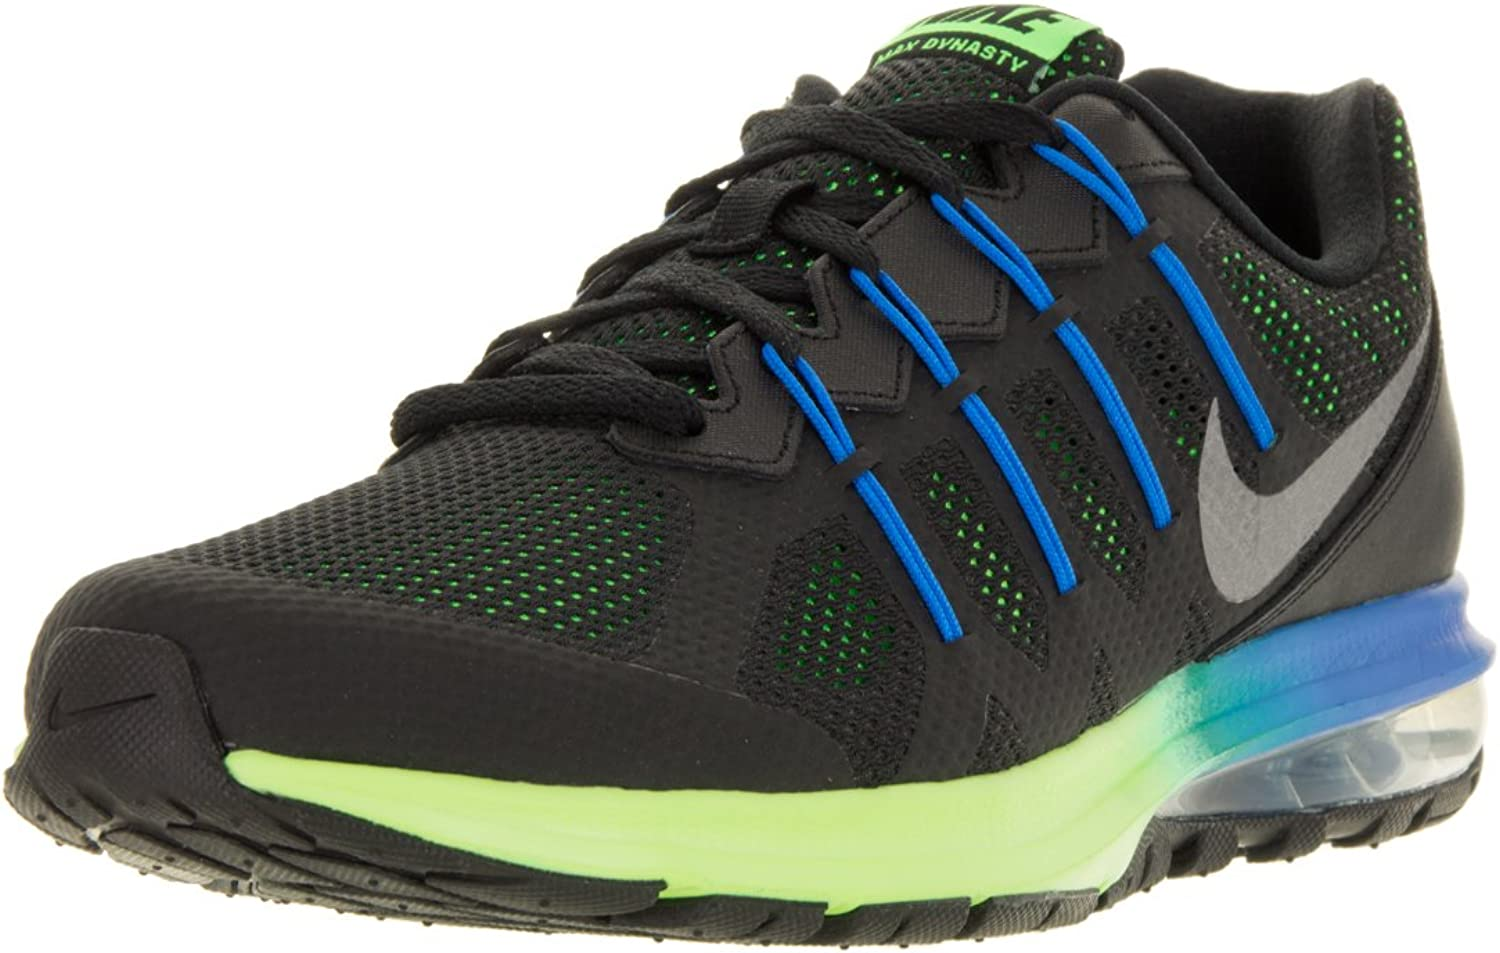 Nike Men's Air Max Dynasty Running shoes